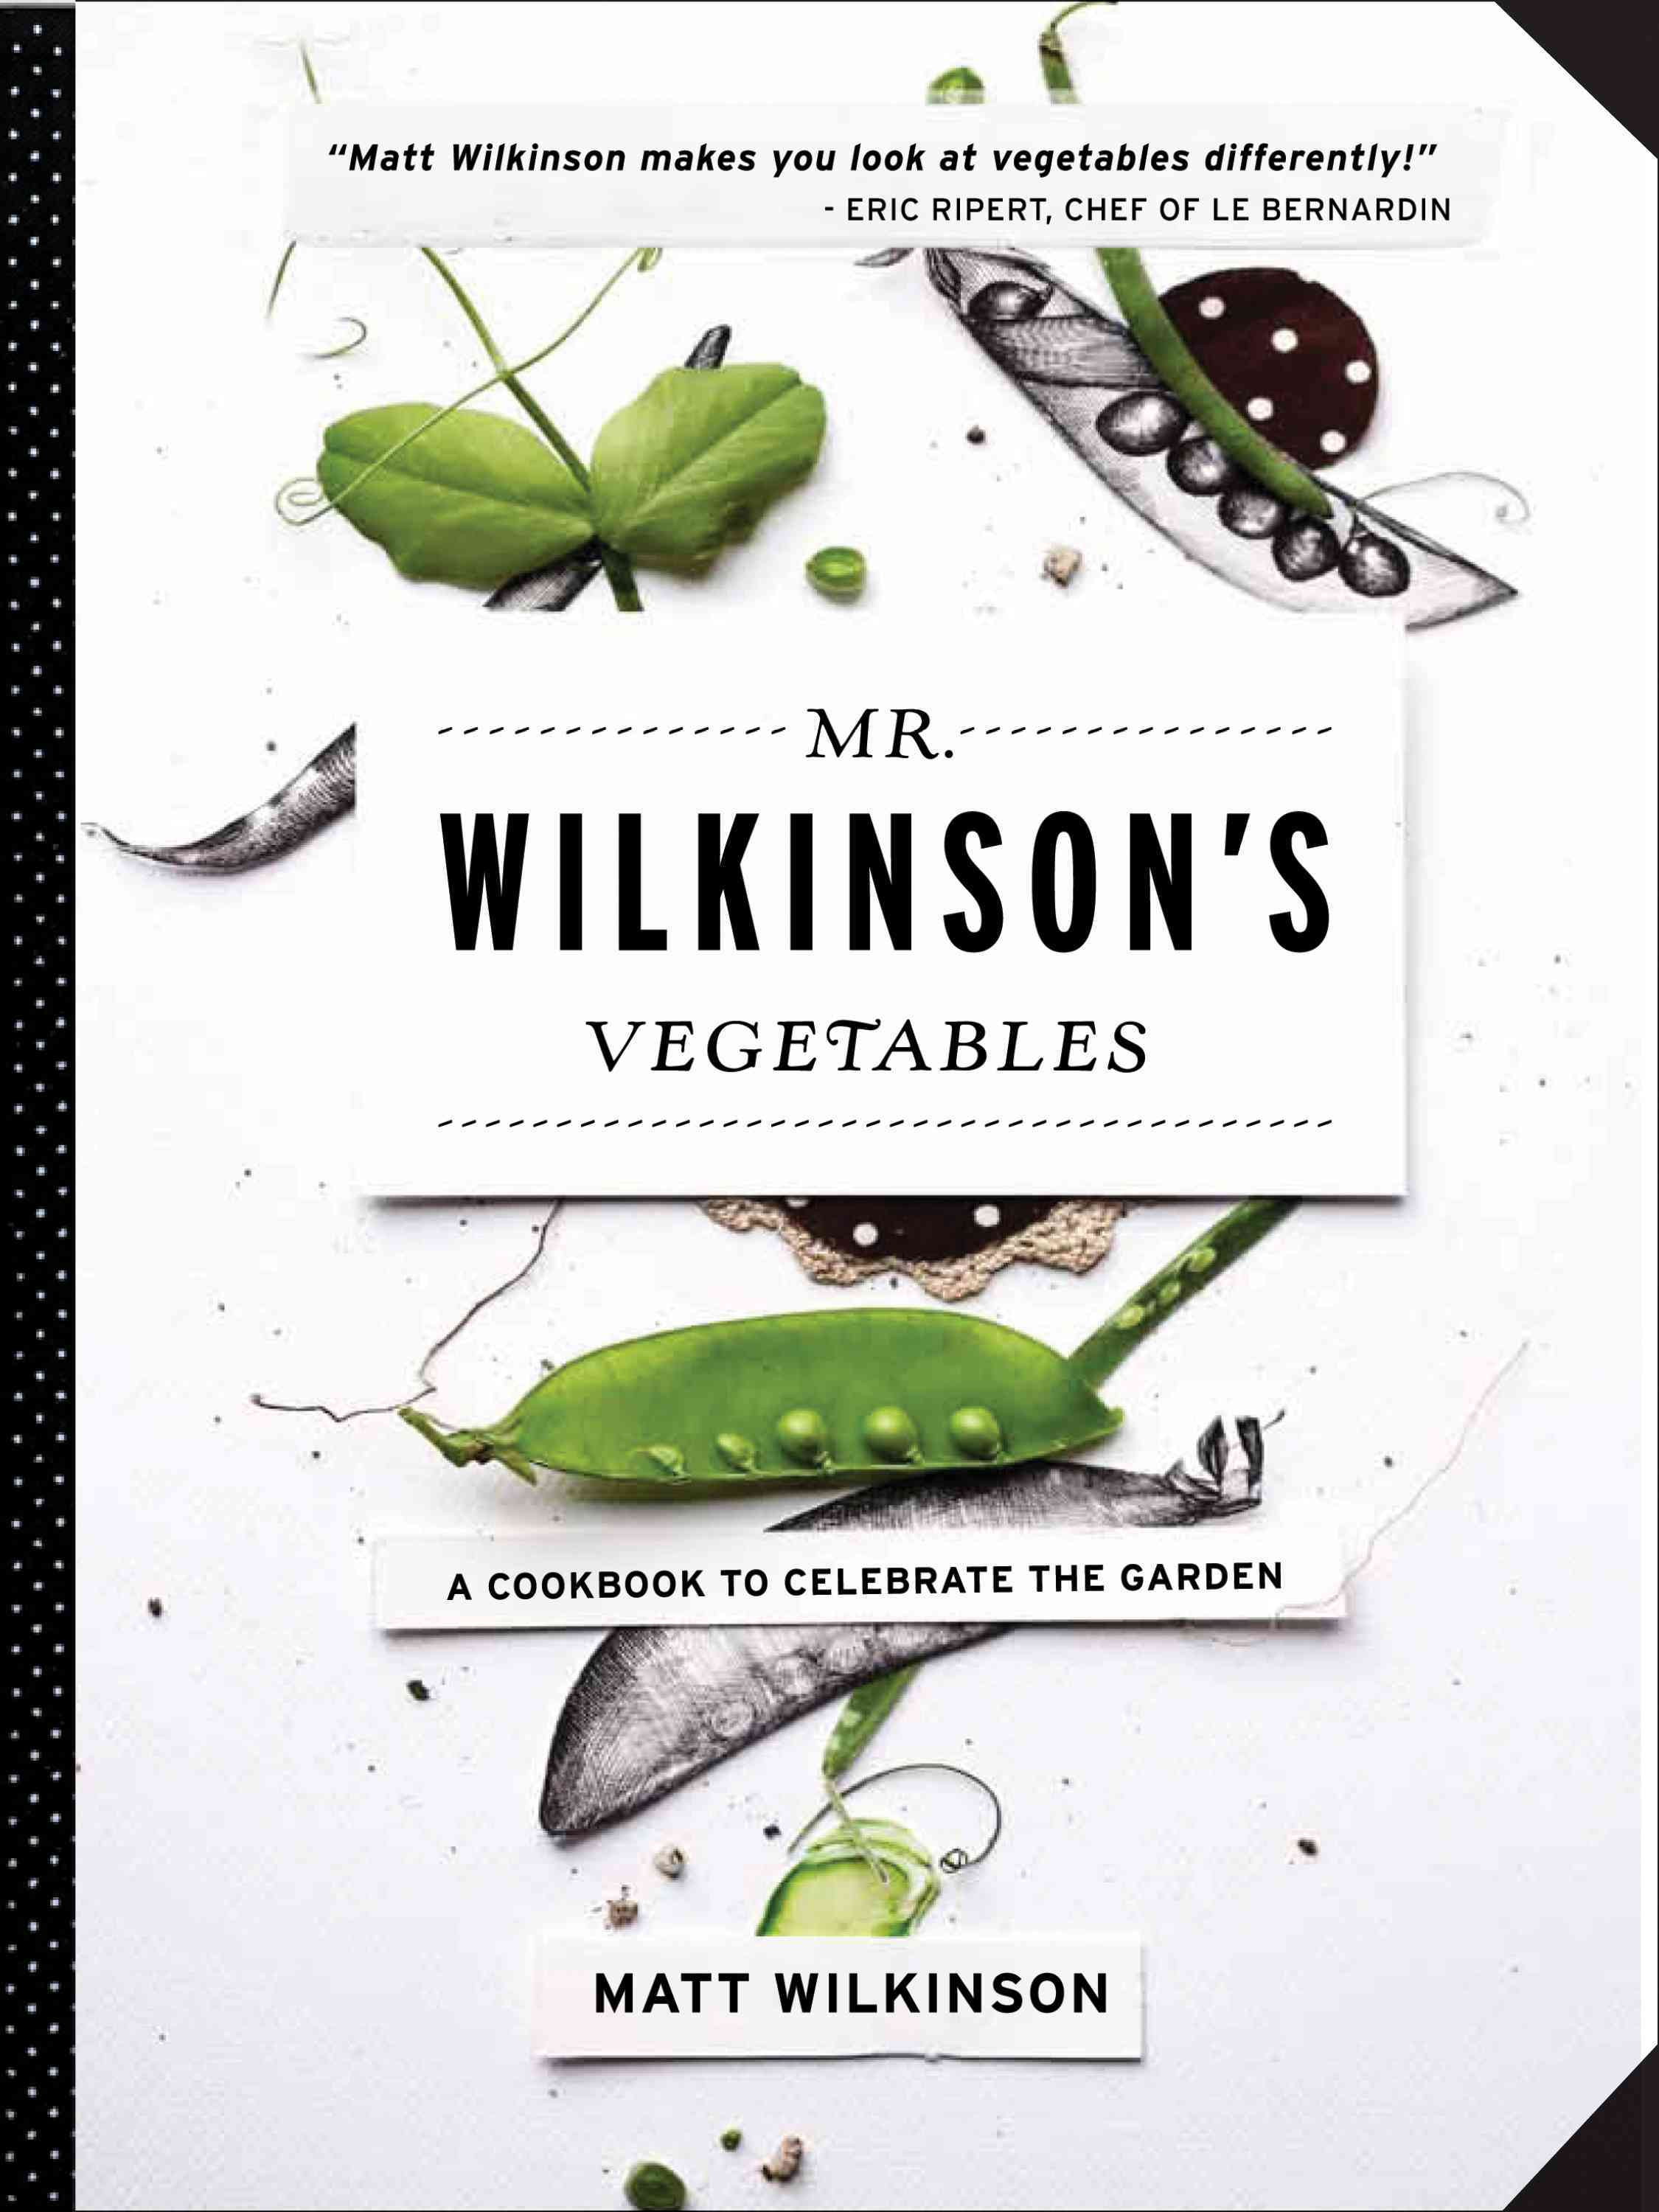 Mr. Wilkinson's Vegetables: A Cookbook to Celebrate the Garden (Hardcover)